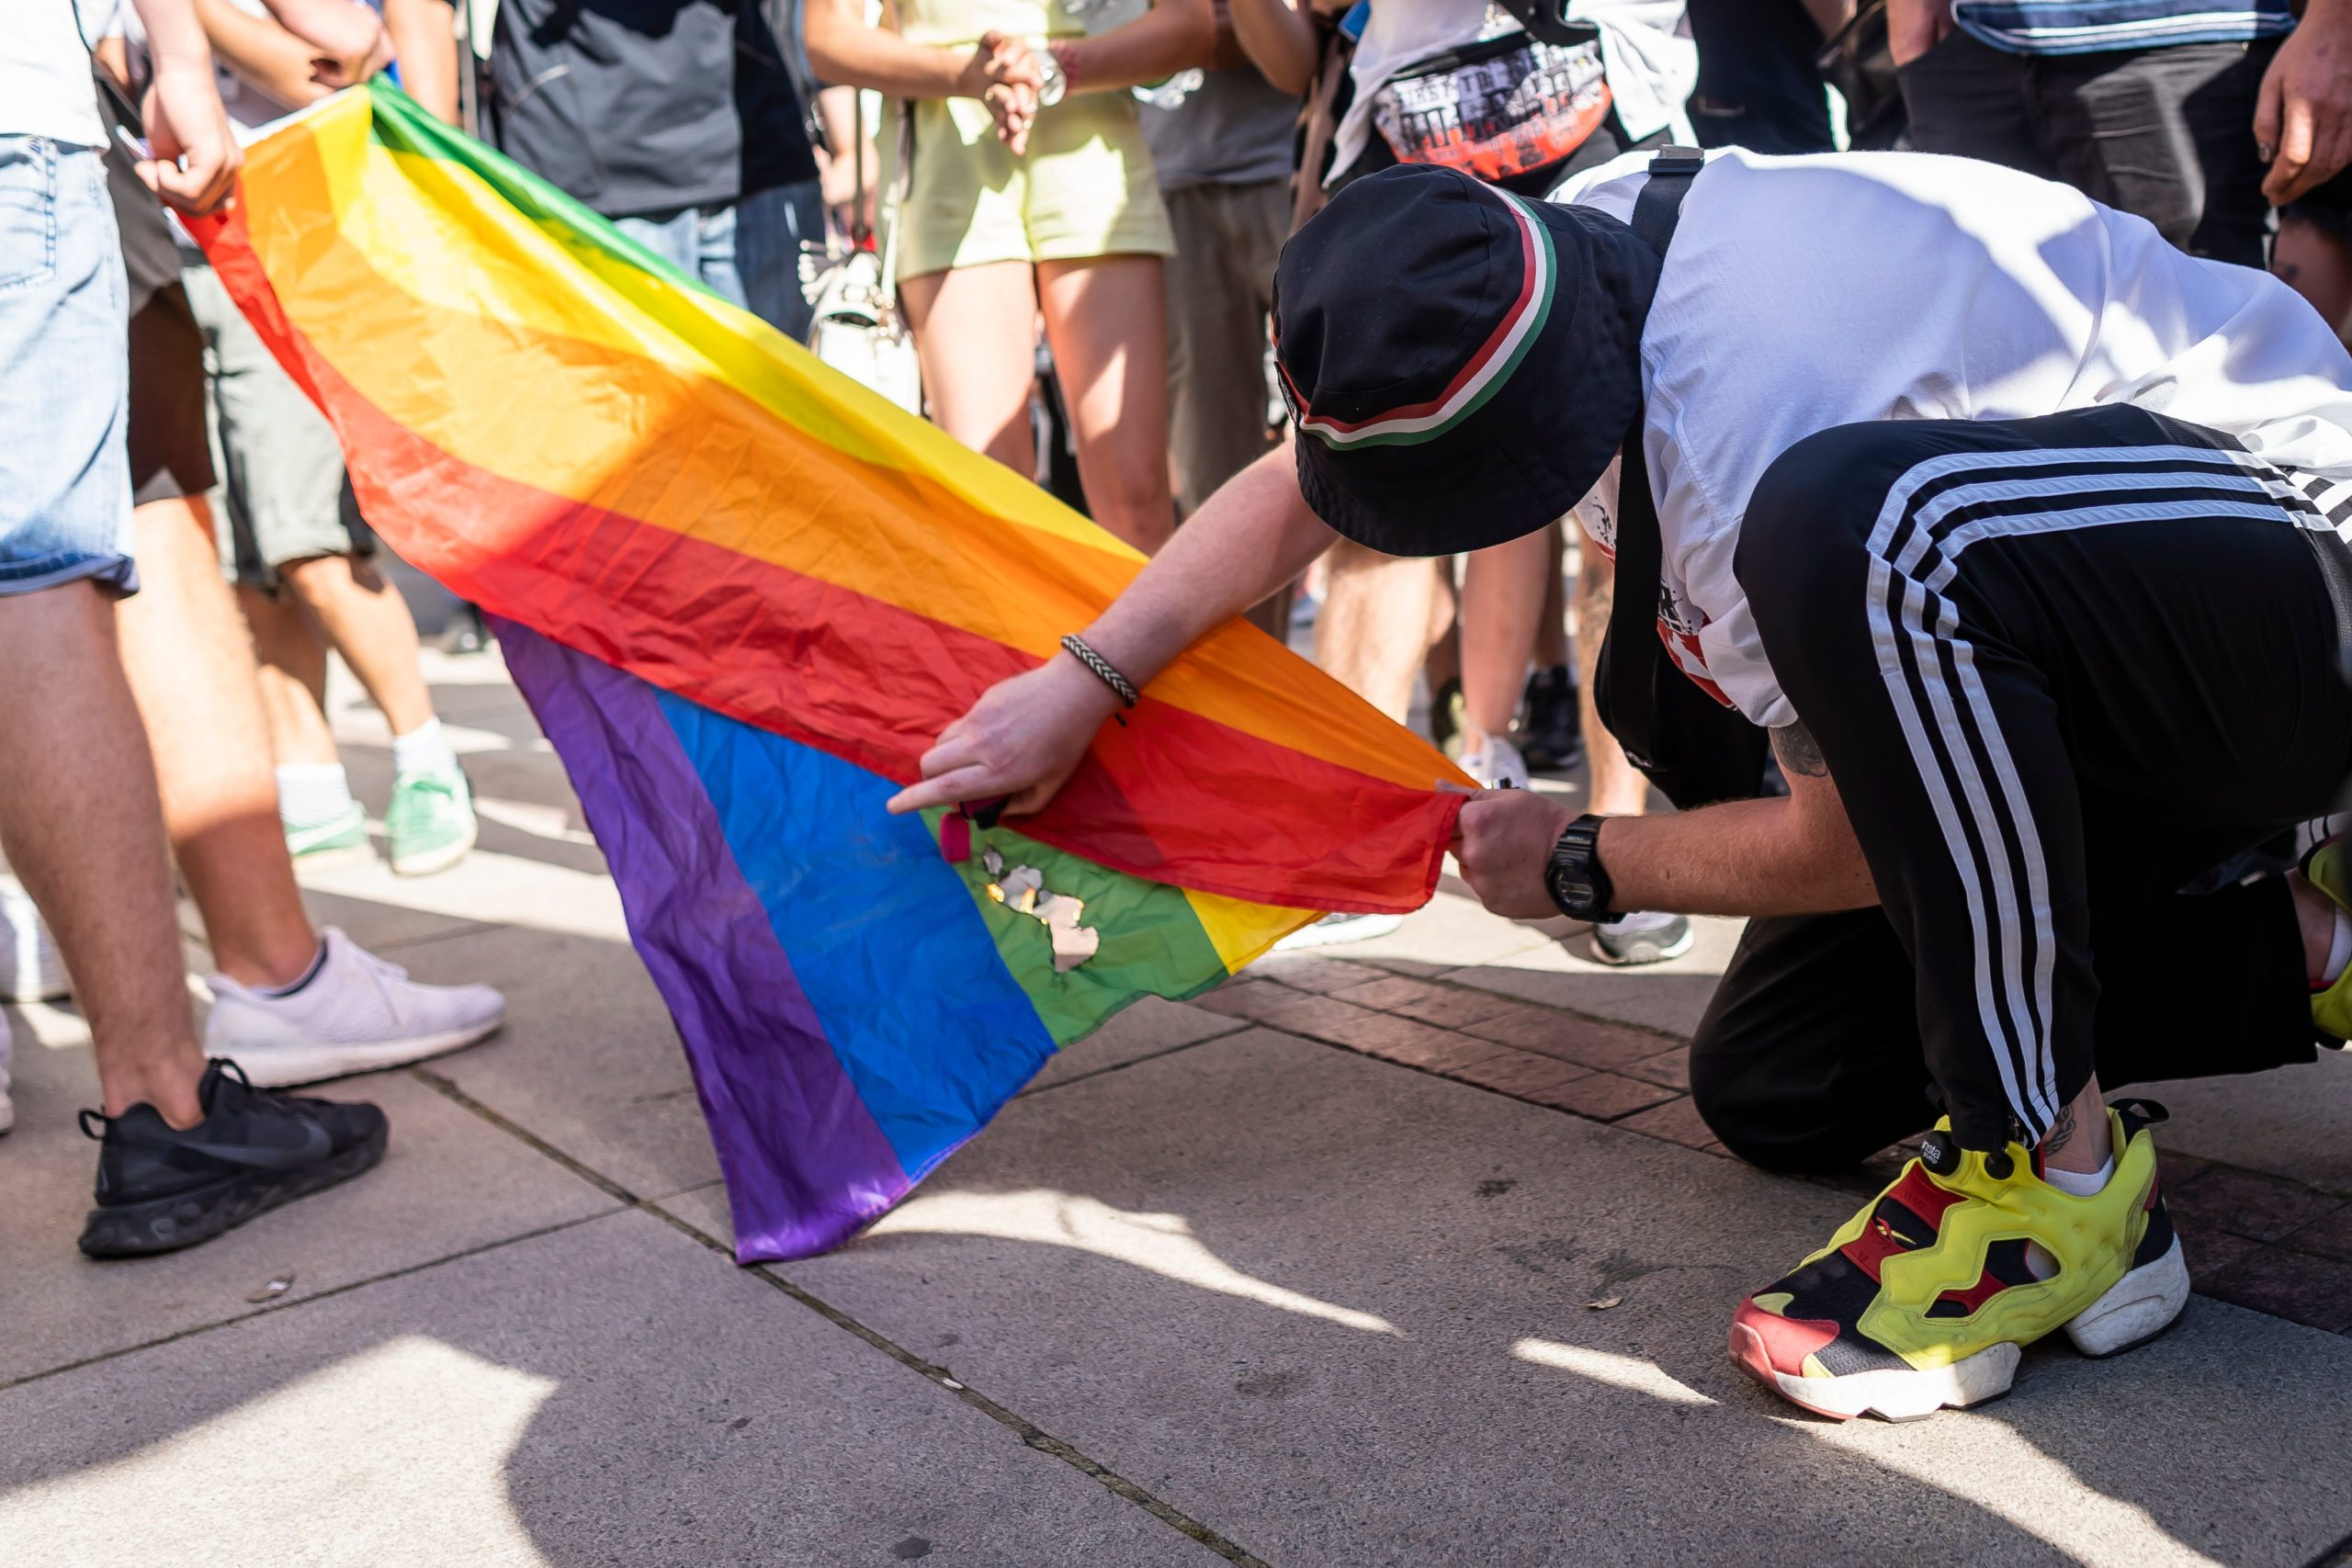 An activist attempts to burn a rainbow flag in front of the Warsaw University